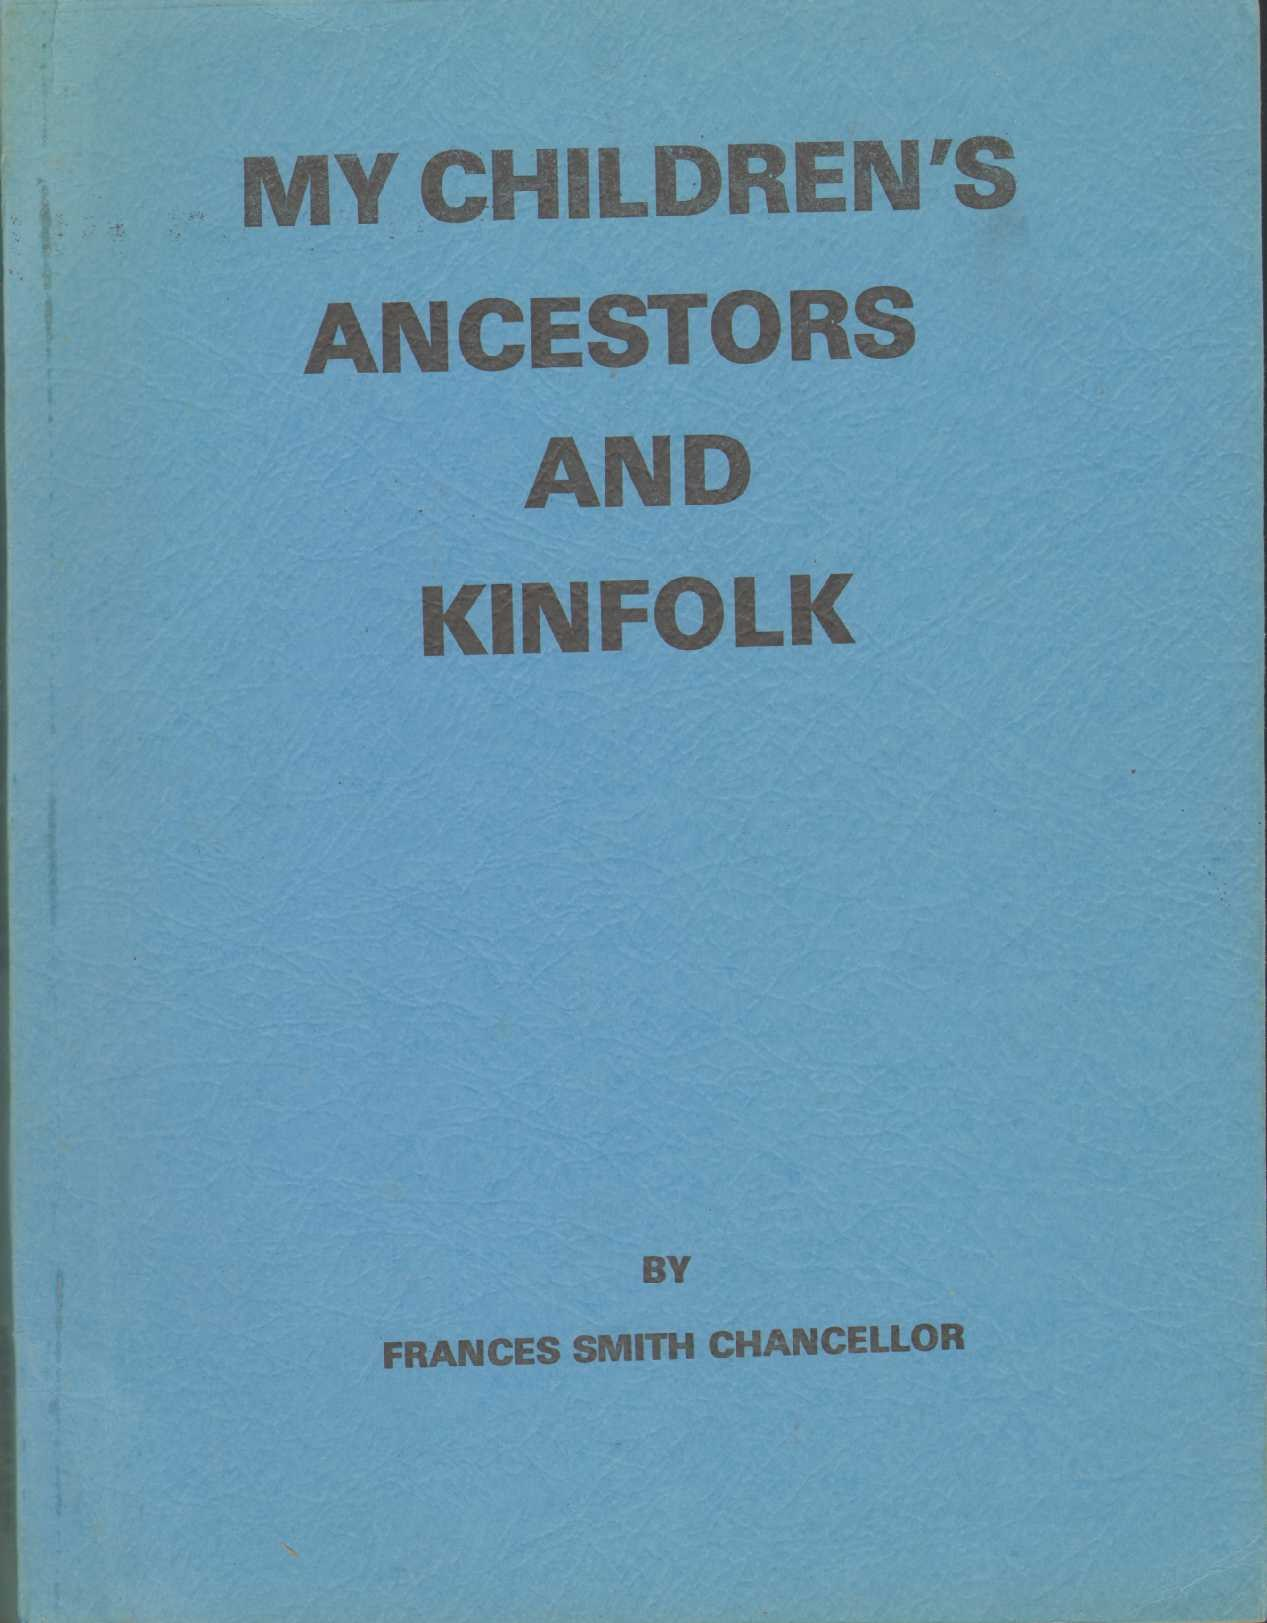 MY CHILDREN'S ANCESTORS AND KINFOLK, Chancellor, Frances Smith